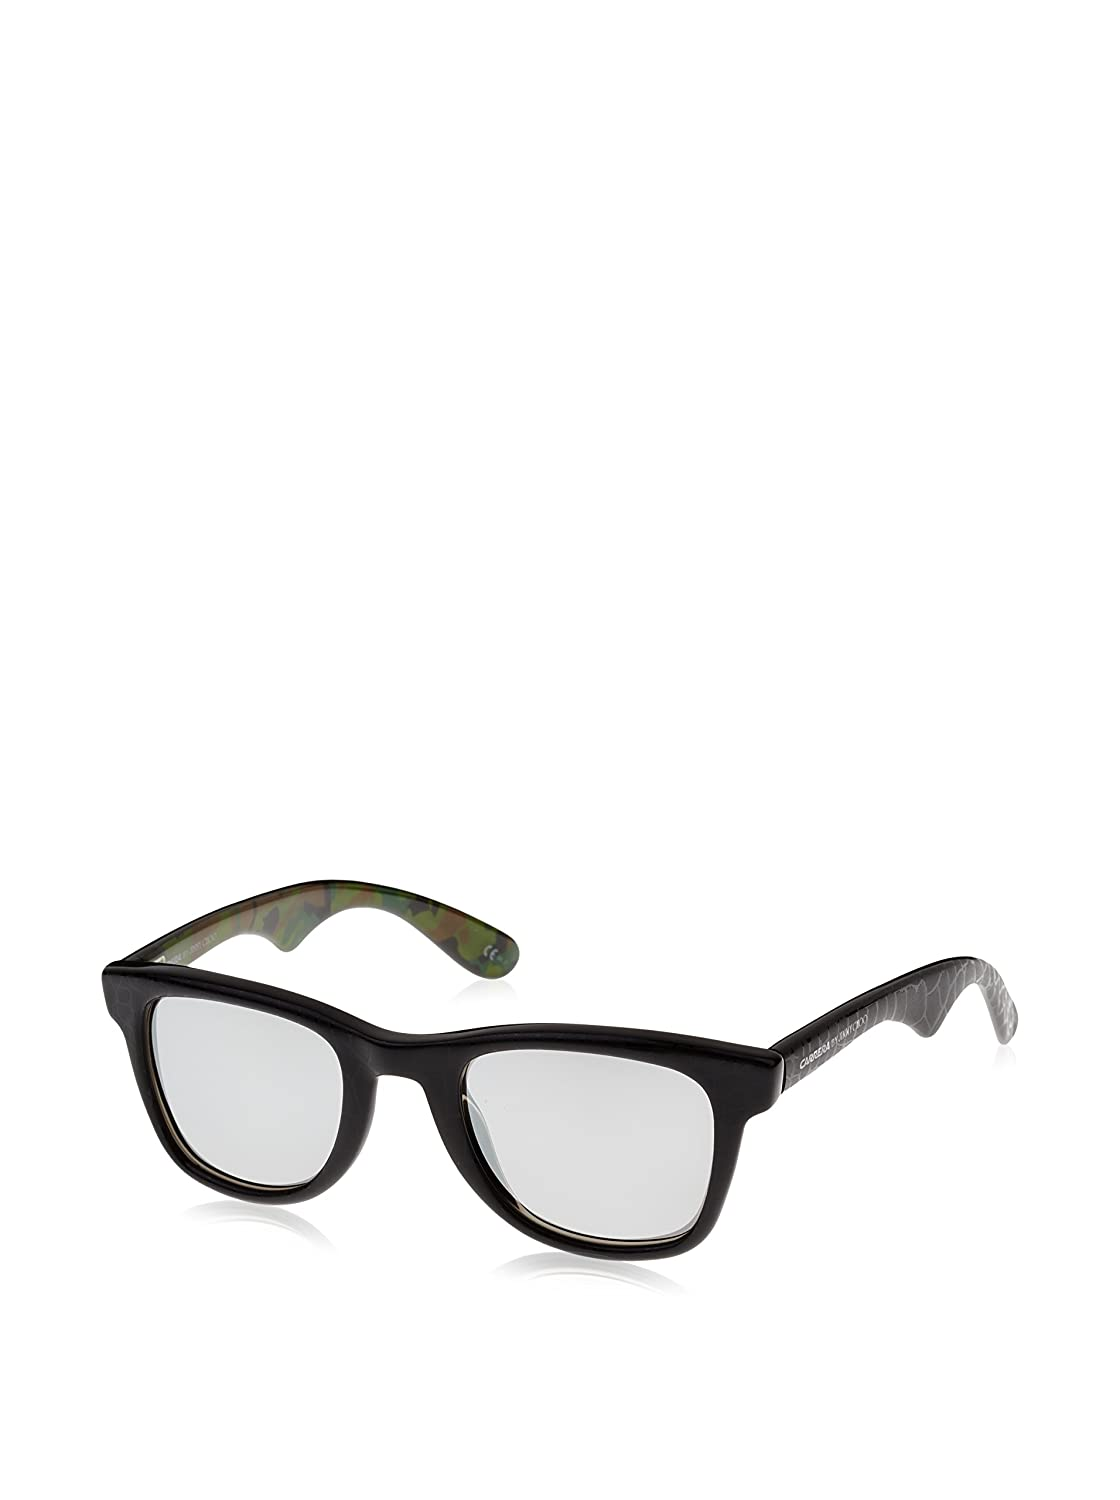 One Size Carrera by Jimmy Choo CARRERA6000 CARRERA6000//JCM/_OGY-50 Carrera Mens 6000JCM//S Sunglasses Black Gray Camo//Gray SP Silver